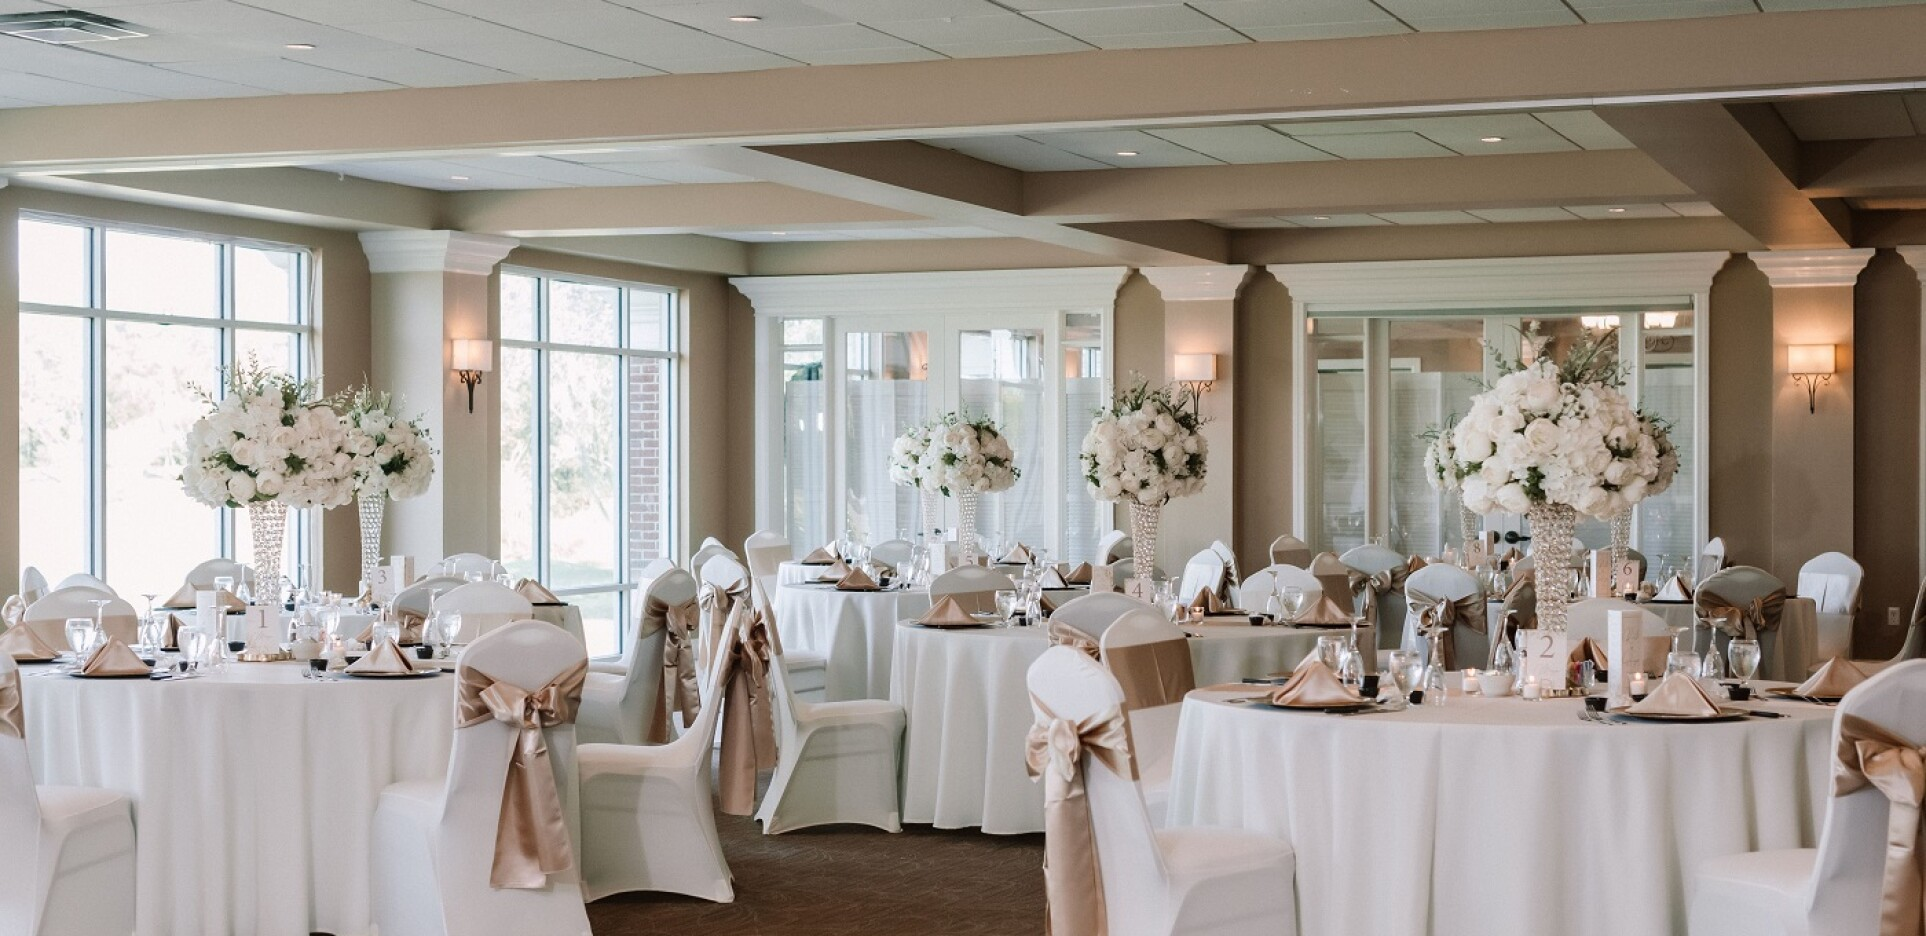 Lakeland wedding at The Club at Eaglebrooke